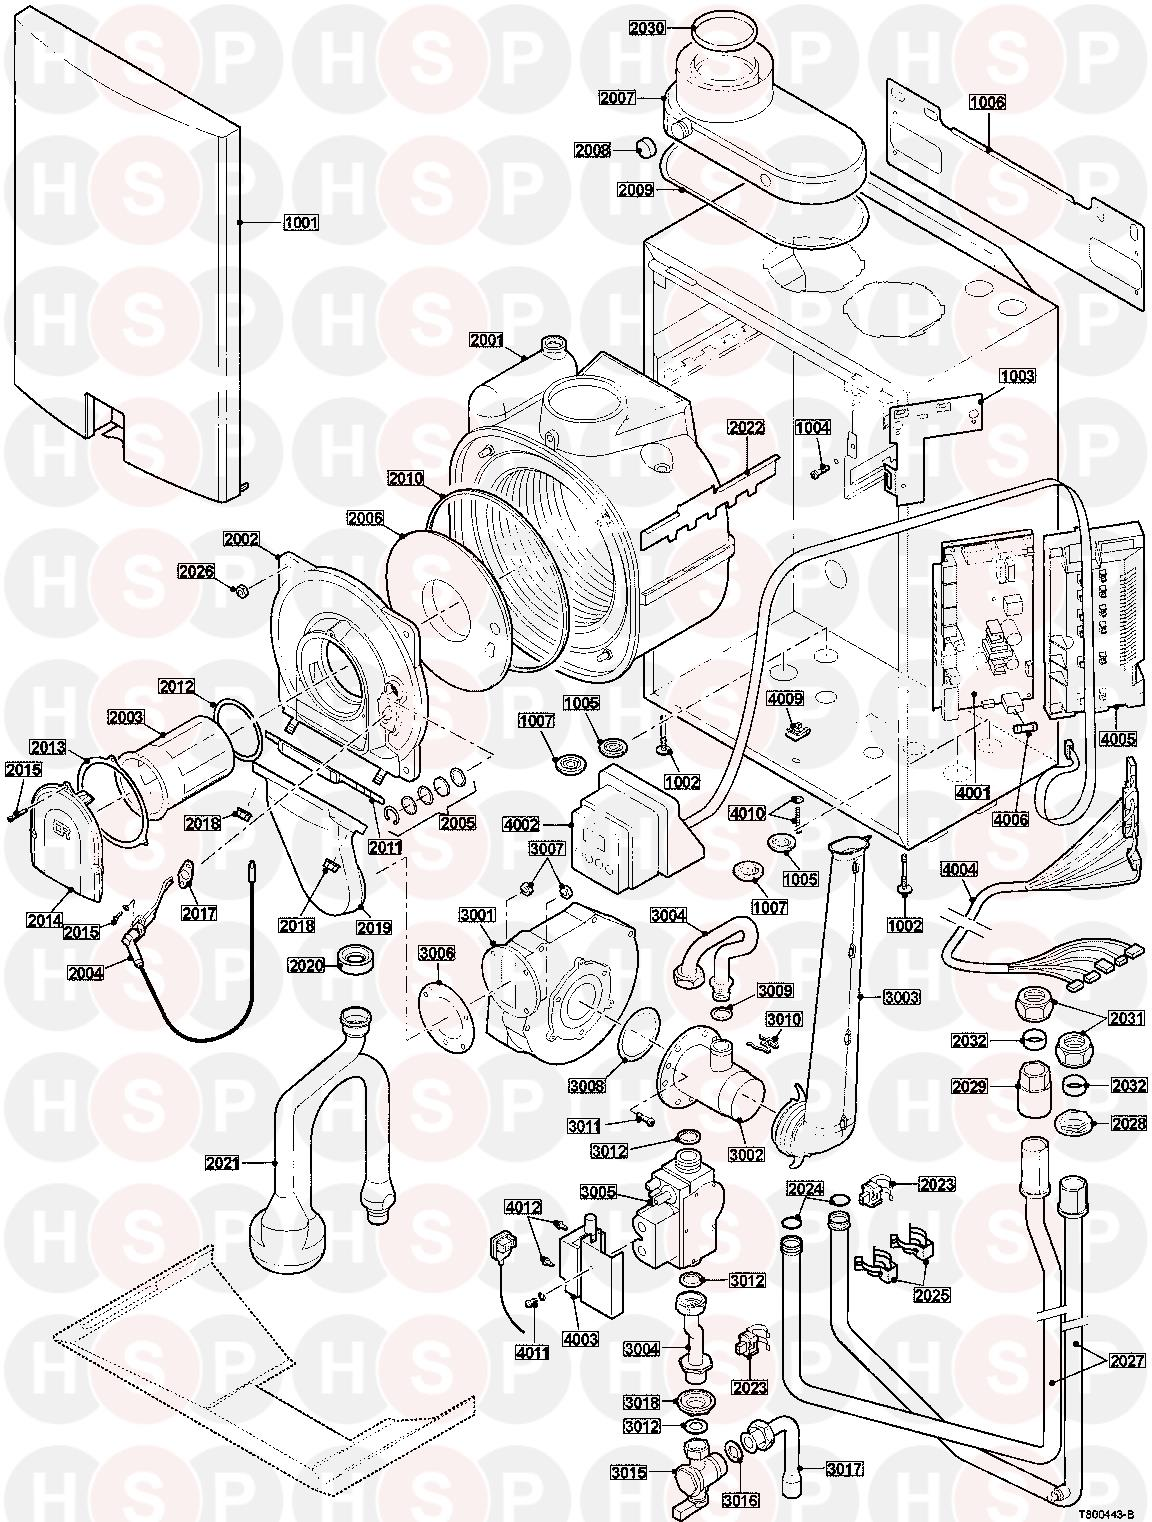 Baxi 24H HEAT ONLY Appliance Diagram (EXPLODED VIEW